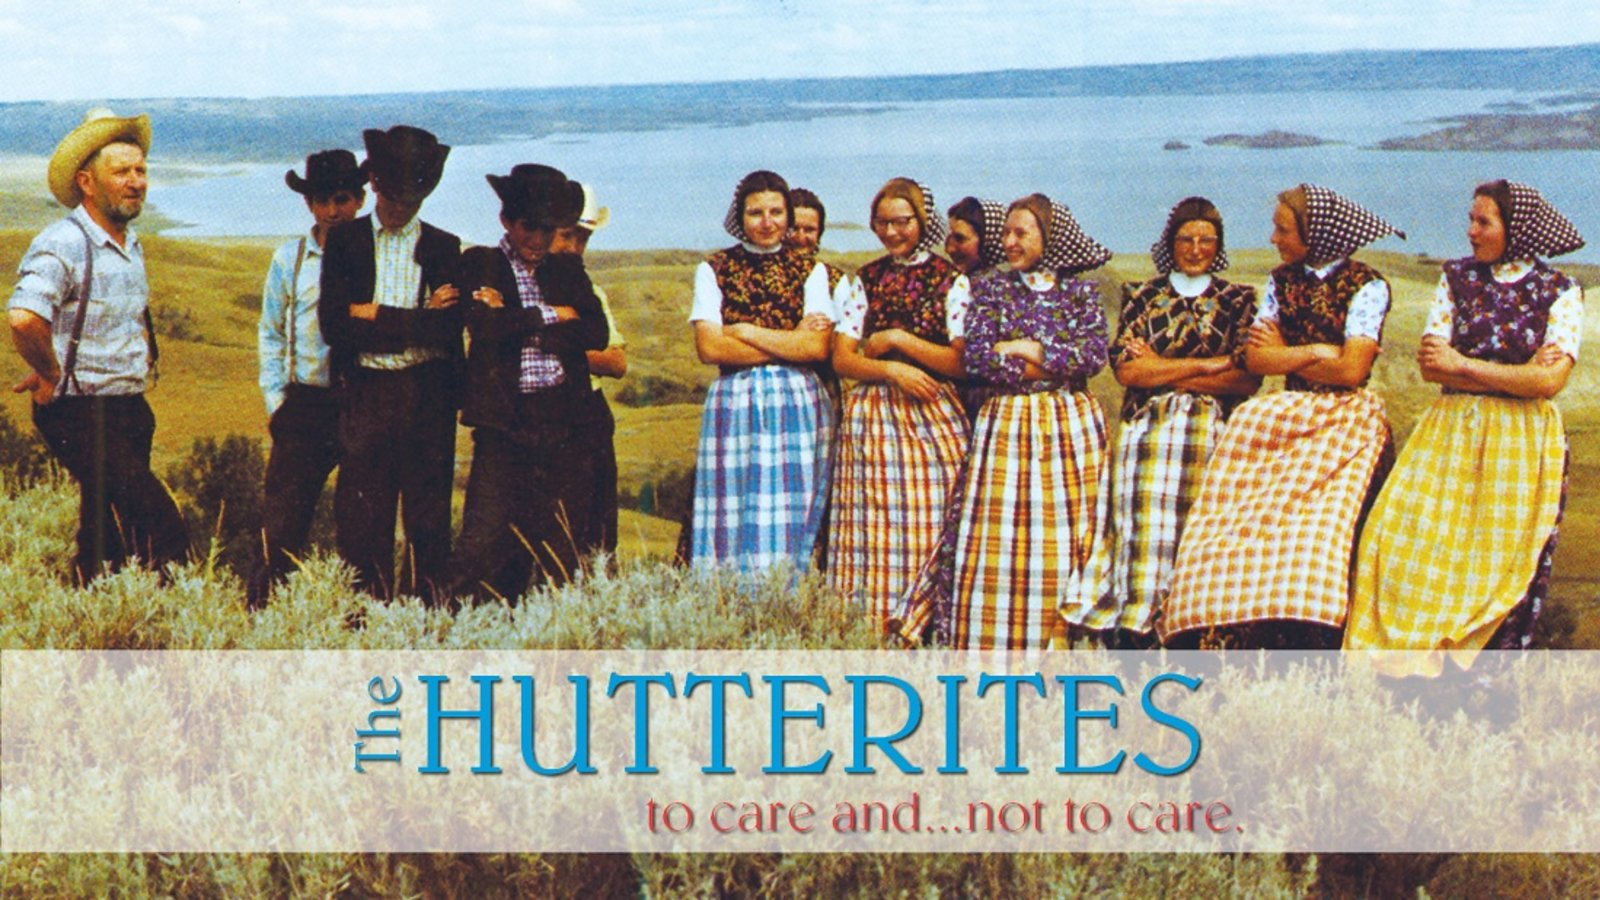 Hutterites: To Care and Not to Care